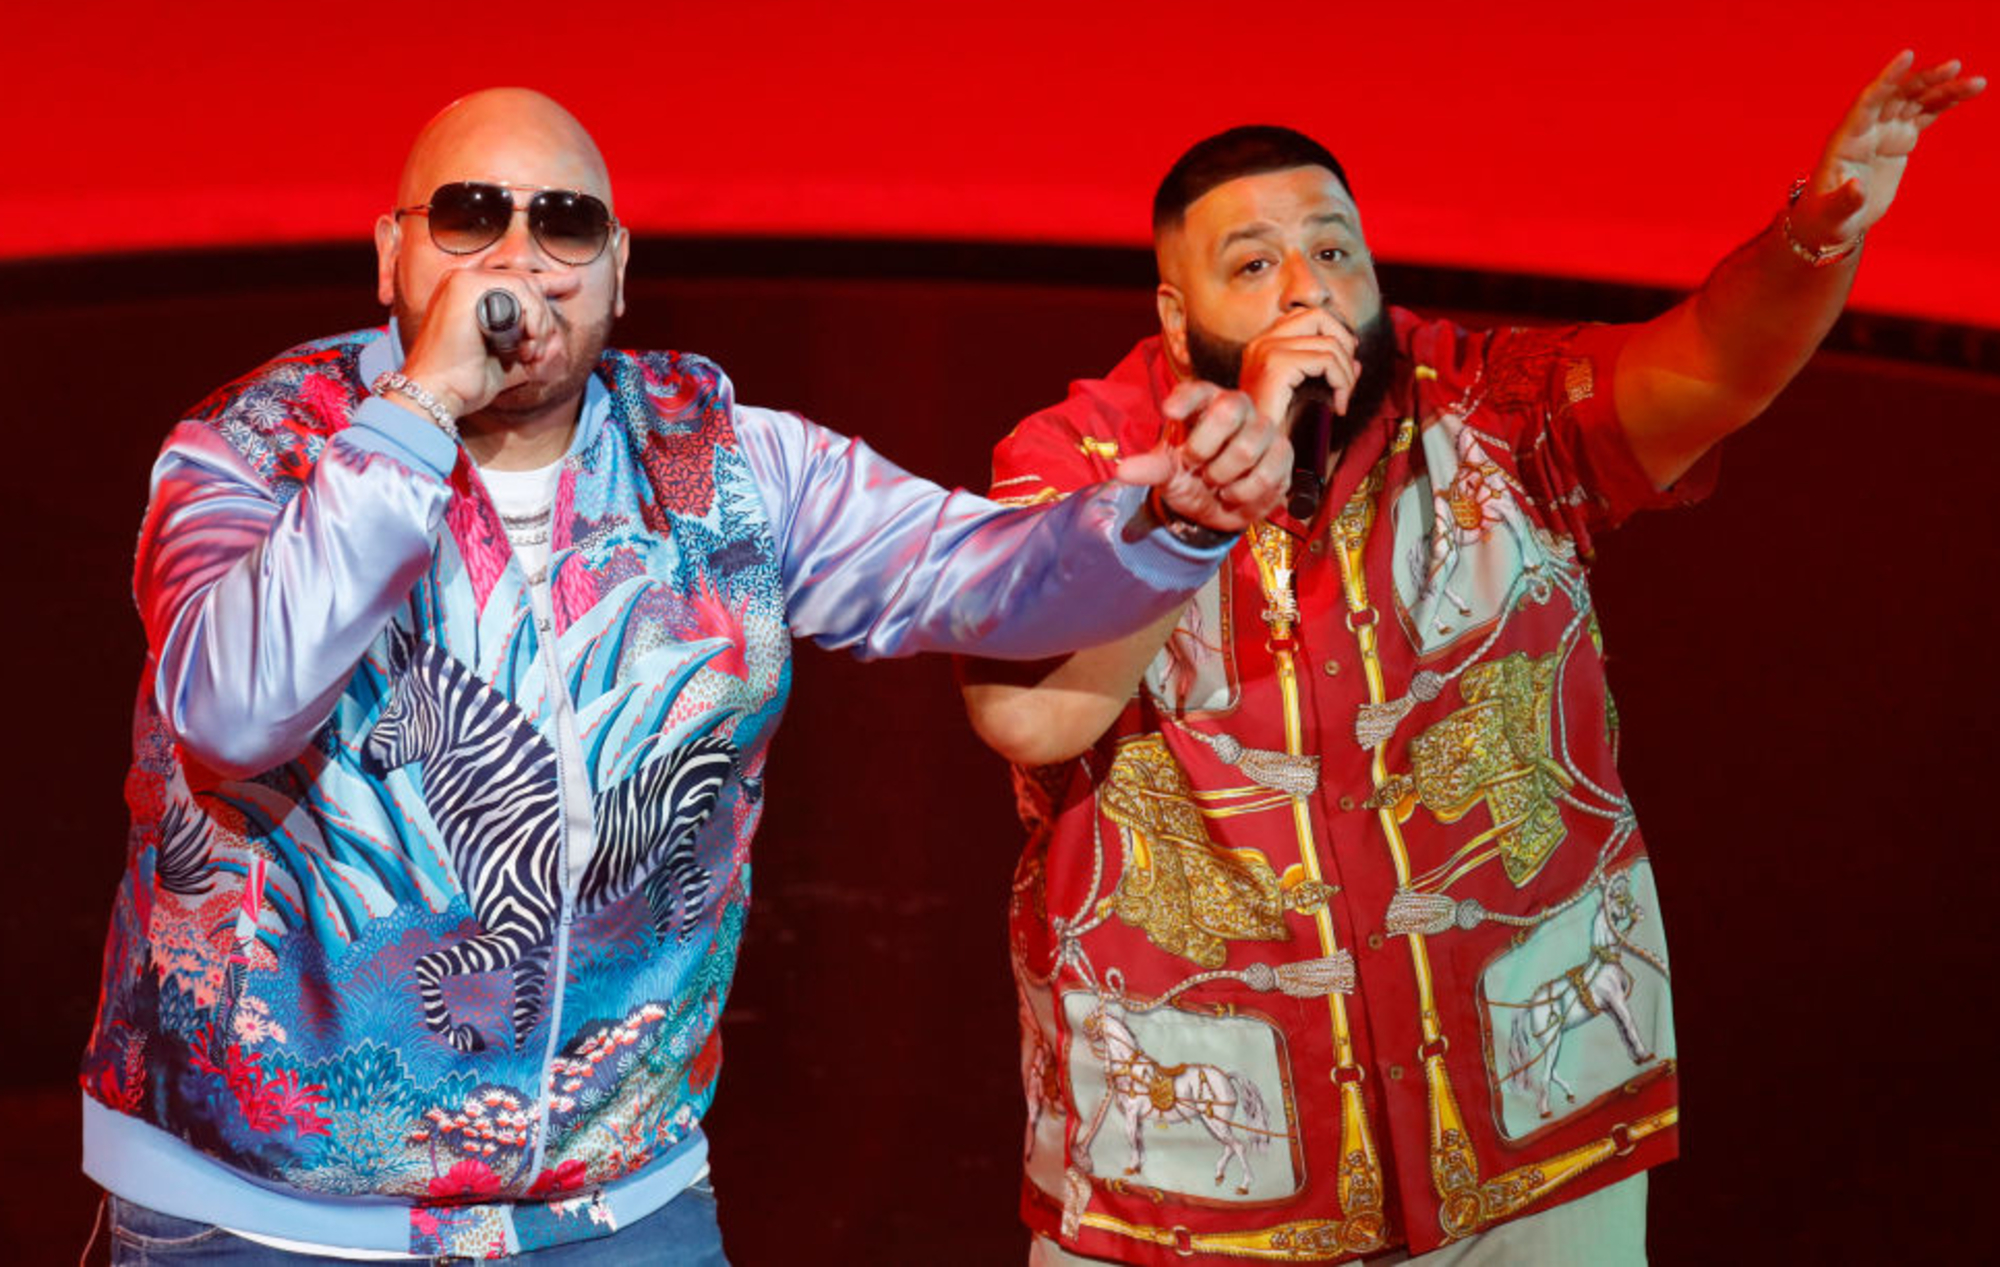 DJ Khaled and Fat Joe are latest musicians to create OnlyFans profile